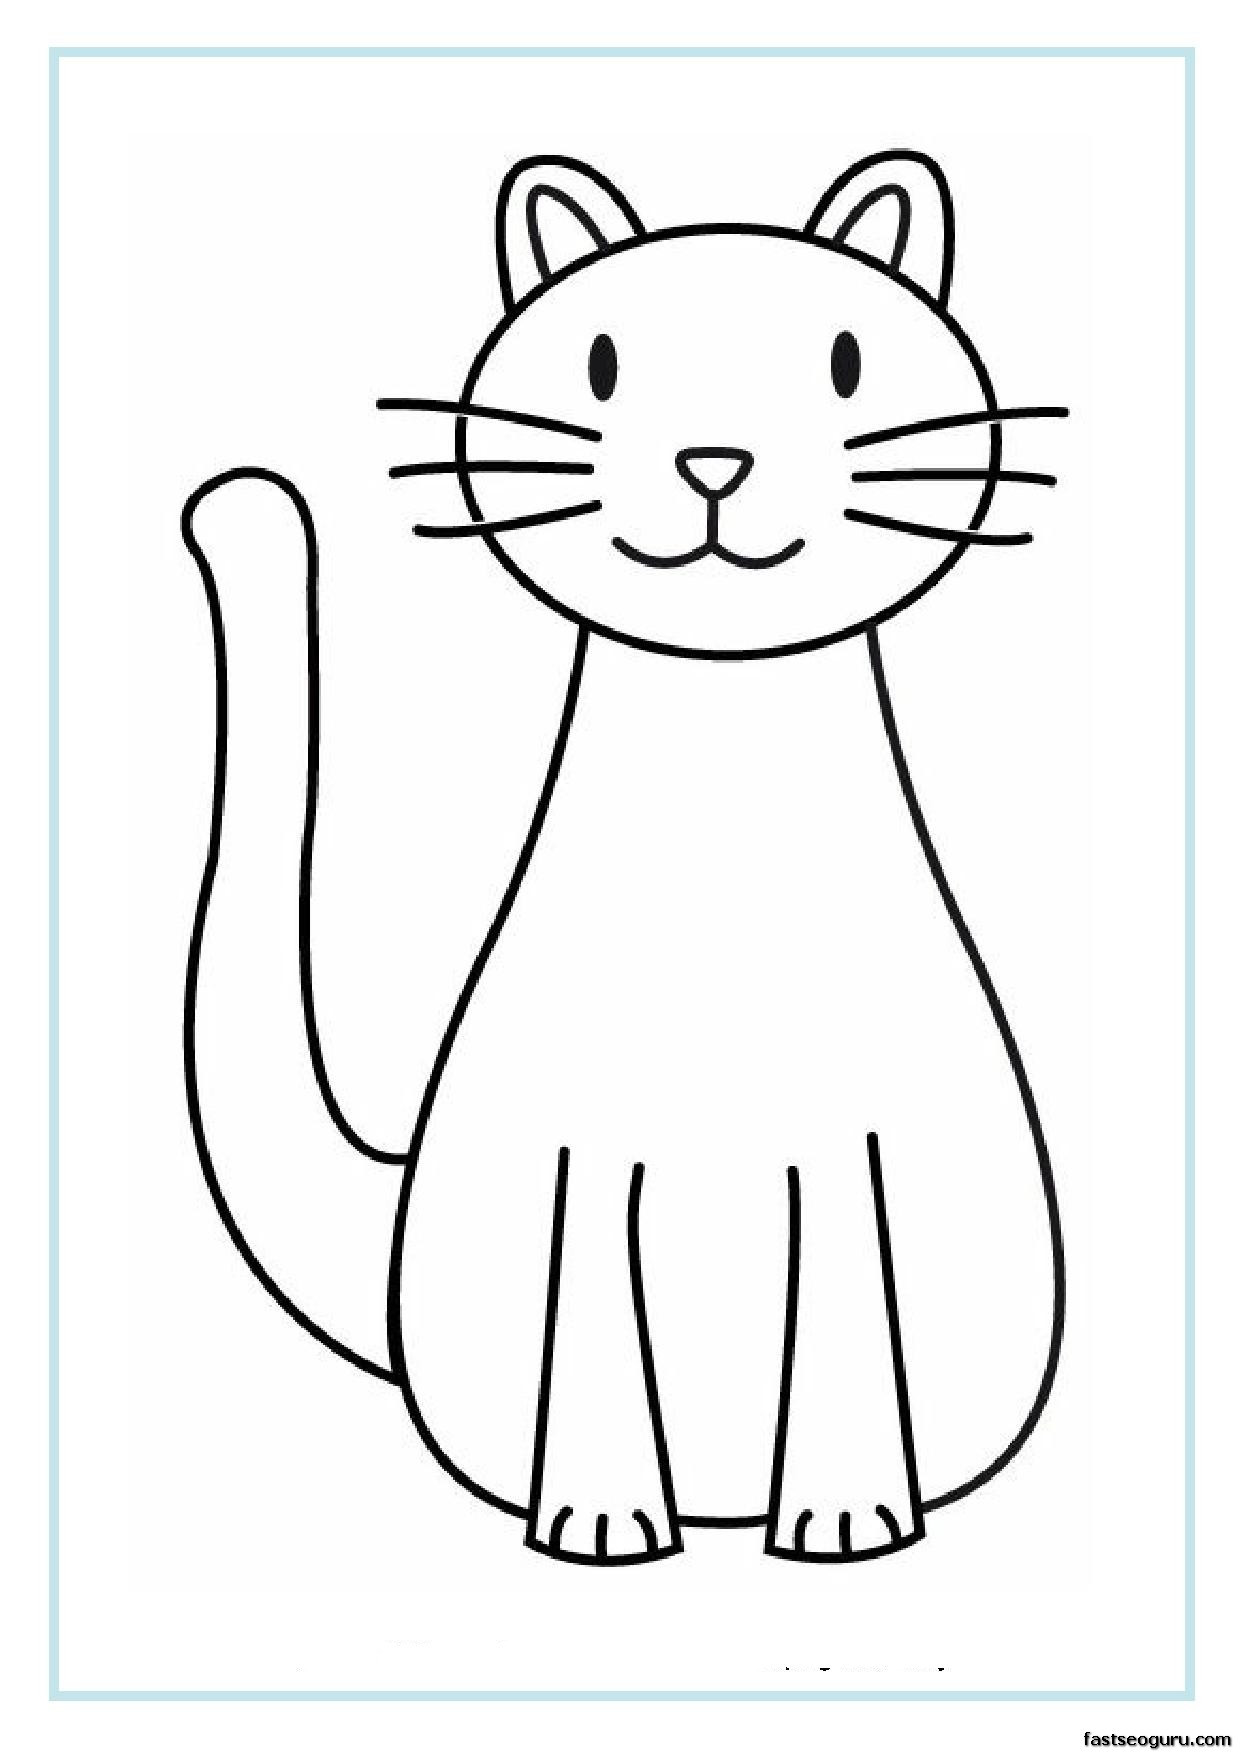 Best ideas about Printable Cat Coloring Pages For Kids . Save or Pin 1000 images about Drawing Ideas for Kids on Pinterest Now.